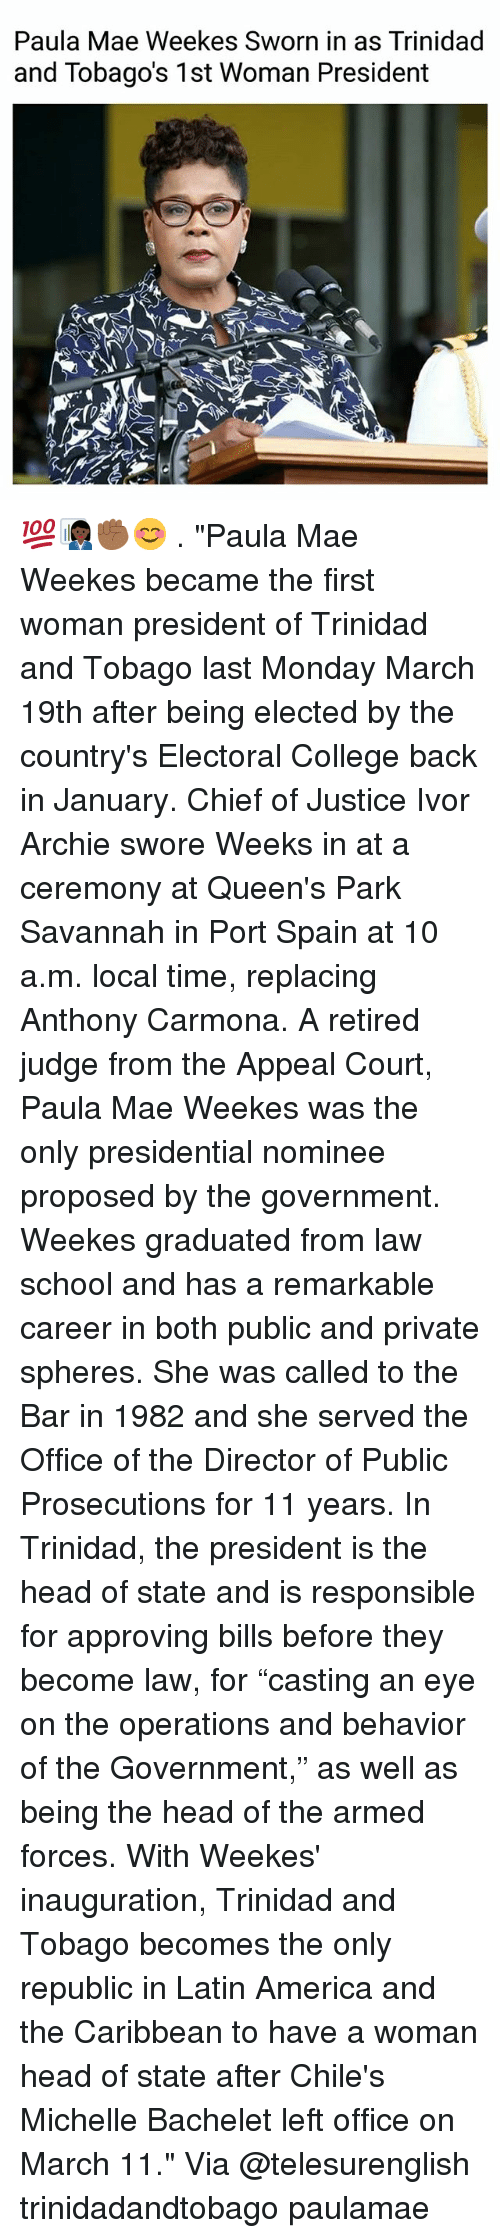 "America, College, and Head: Paula Mae Weekes Sworn in as Trinidad  and Tobago's 1st Woman President 💯👩🏿‍💼✊🏾😊 . ""Paula Mae Weekes became the first woman president of Trinidad and Tobago last Monday March 19th after being elected by the country's Electoral College back in January. Chief of Justice Ivor Archie swore Weeks in at a ceremony at Queen's Park Savannah in Port Spain at 10 a.m. local time, replacing Anthony Carmona. A retired judge from the Appeal Court, Paula Mae Weekes was the only presidential nominee proposed by the government. Weekes graduated from law school and has a remarkable career in both public and private spheres. She was called to the Bar in 1982 and she served the Office of the Director of Public Prosecutions for 11 years. In Trinidad, the president is the head of state and is responsible for approving bills before they become law, for ""casting an eye on the operations and behavior of the Government,"" as well as being the head of the armed forces. With Weekes' inauguration, Trinidad and Tobago becomes the only republic in Latin America and the Caribbean to have a woman head of state after Chile's Michelle Bachelet left office on March 11."" Via @telesurenglish trinidadandtobago paulamae"